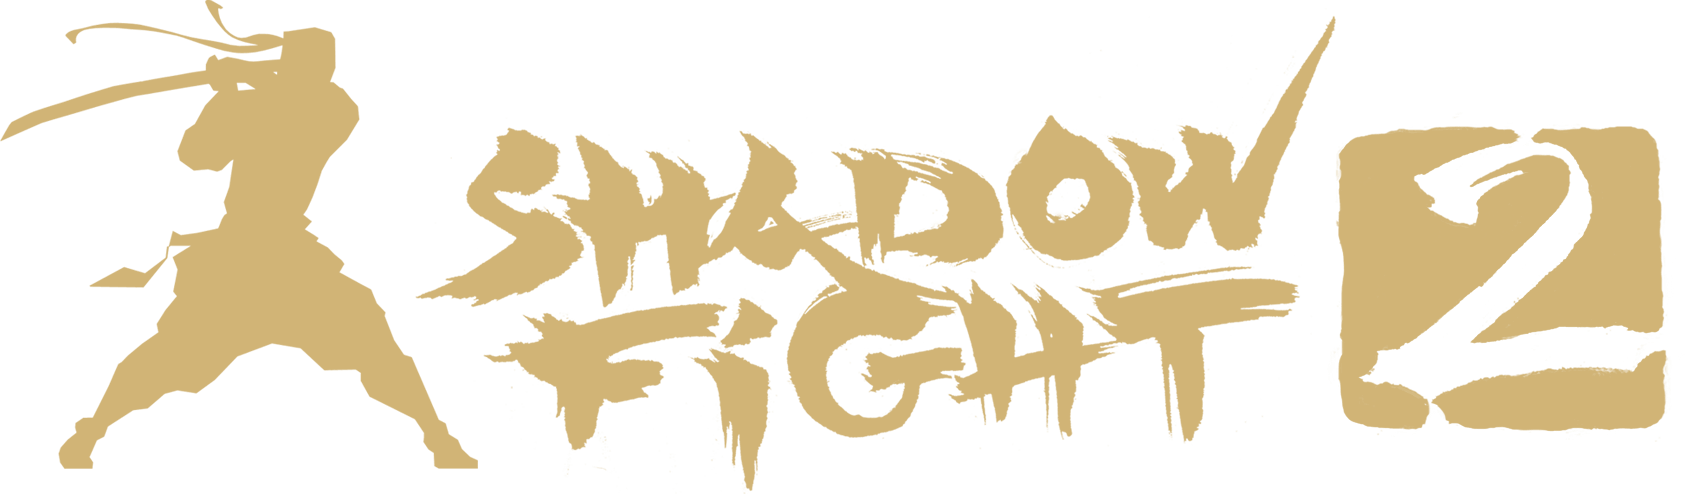 Letters vector shadow. Fight wiki fandom powered